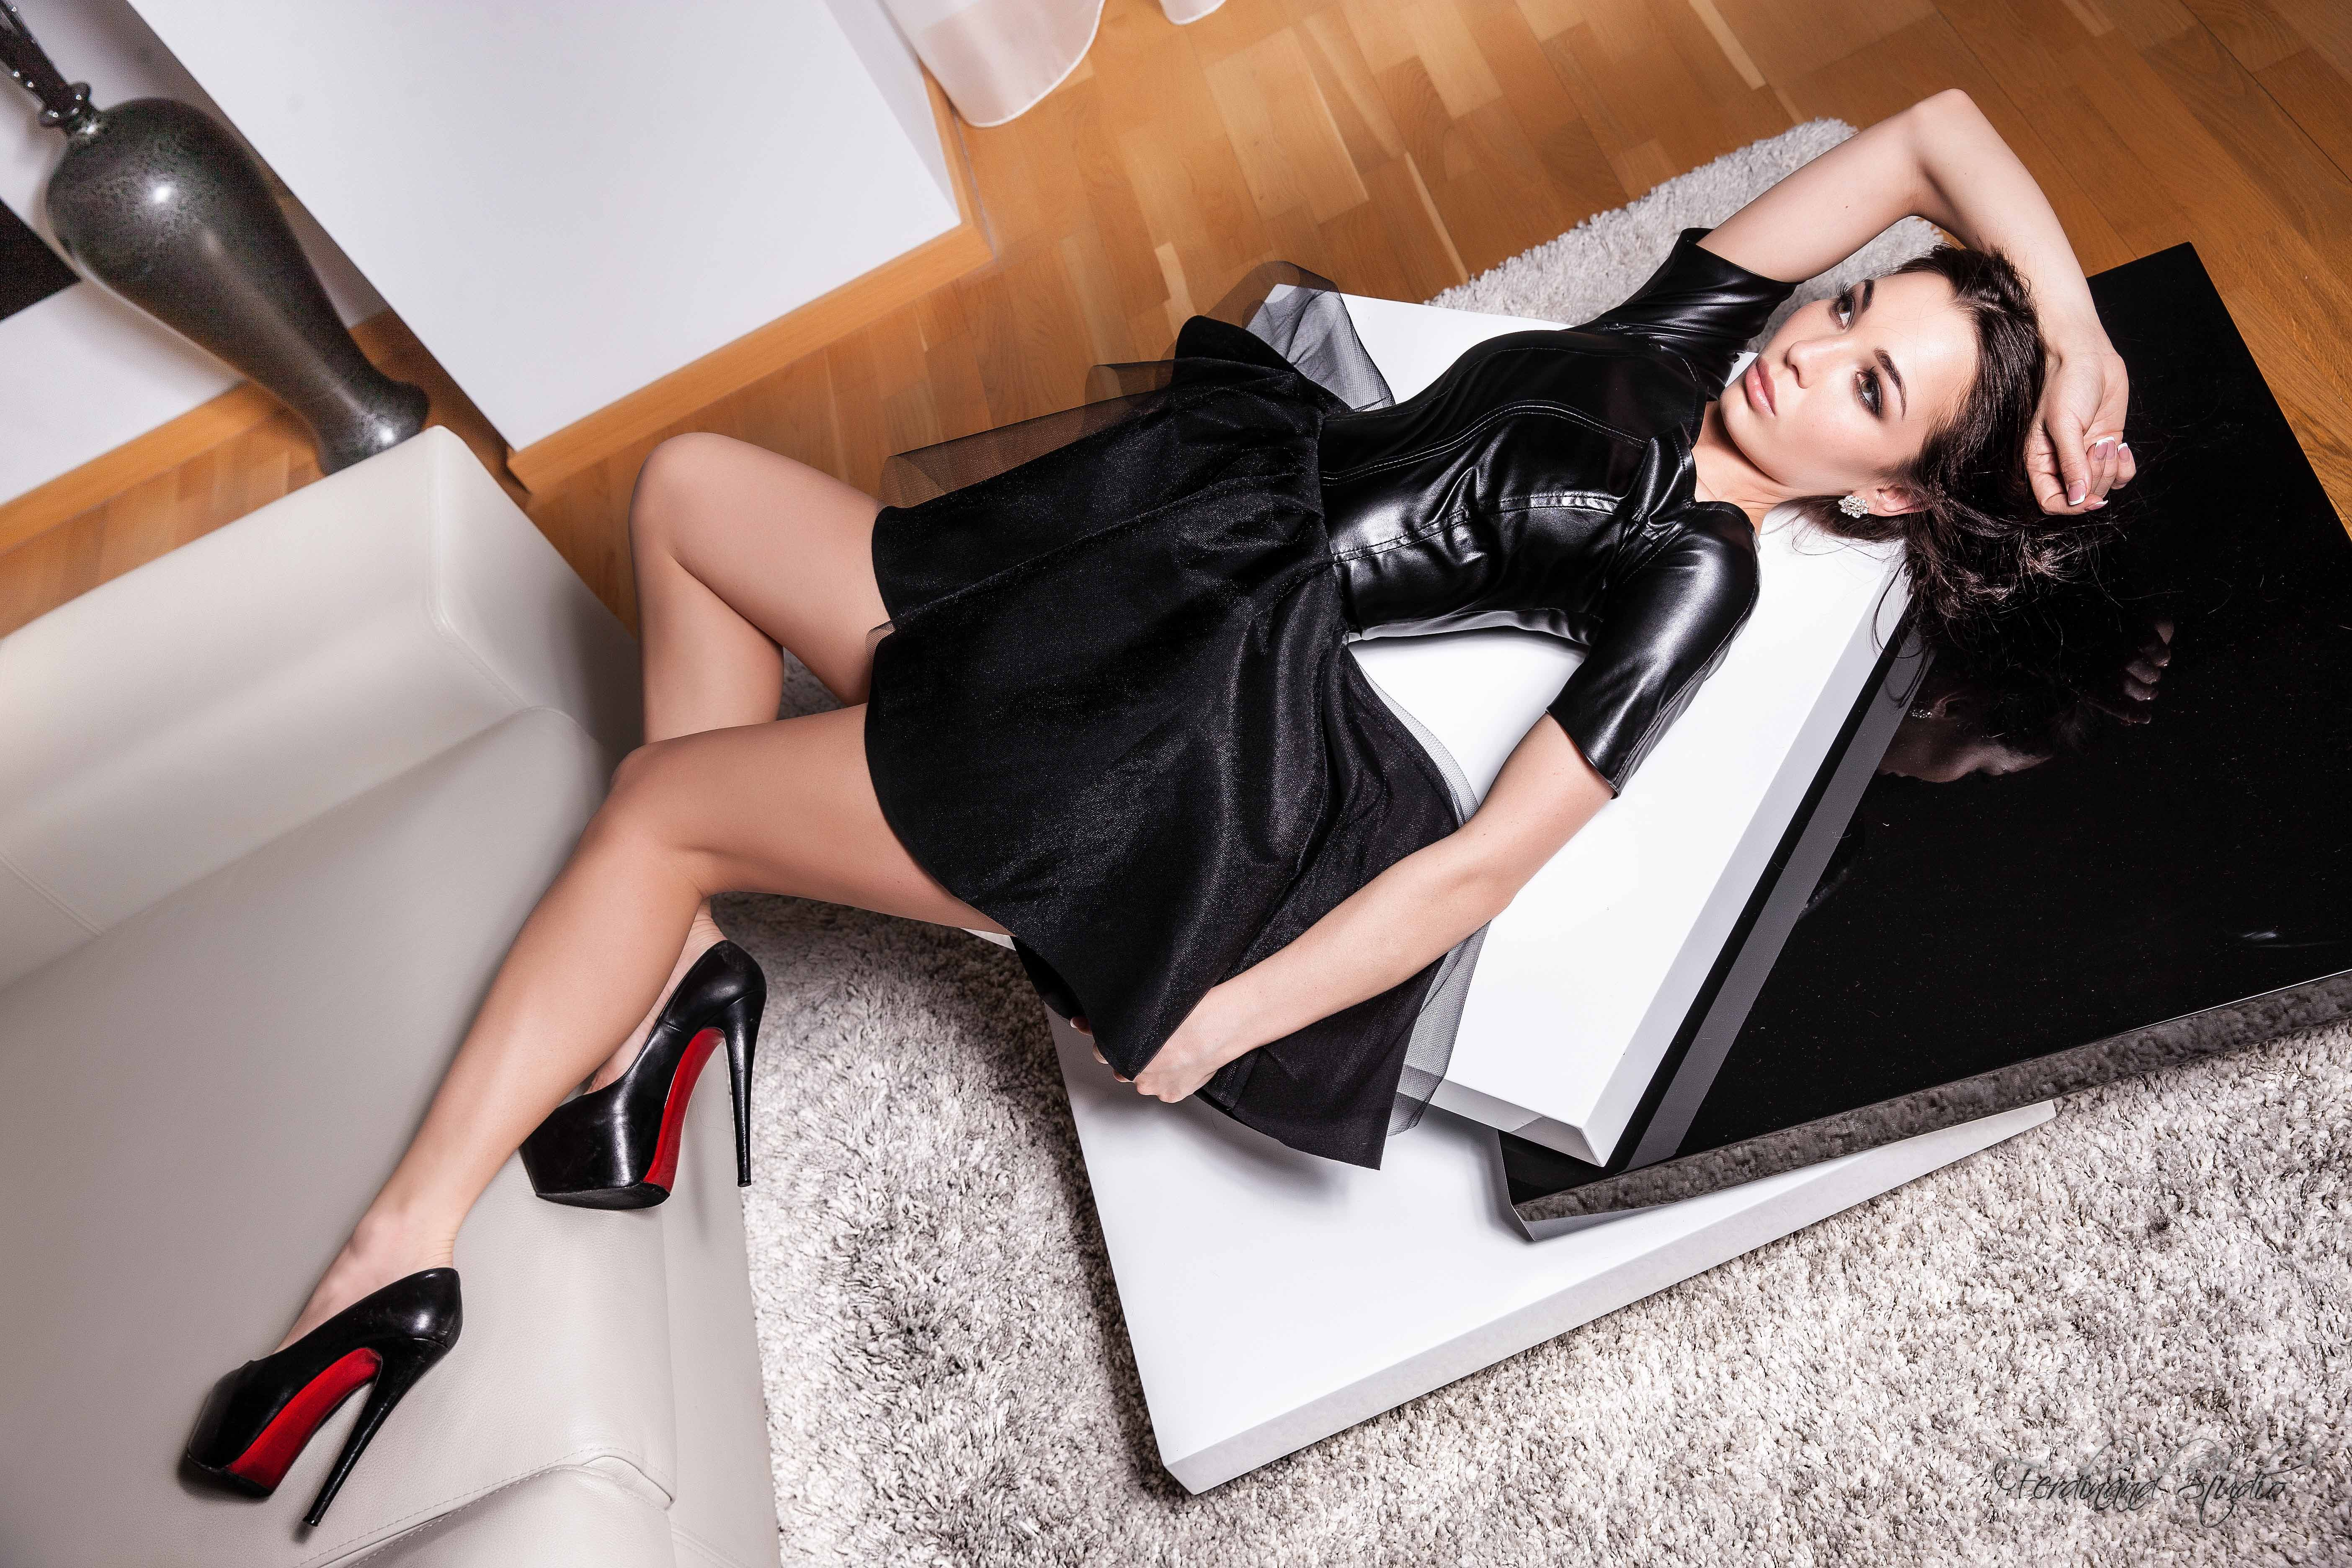 Mile End Escorts charming and naughty lady